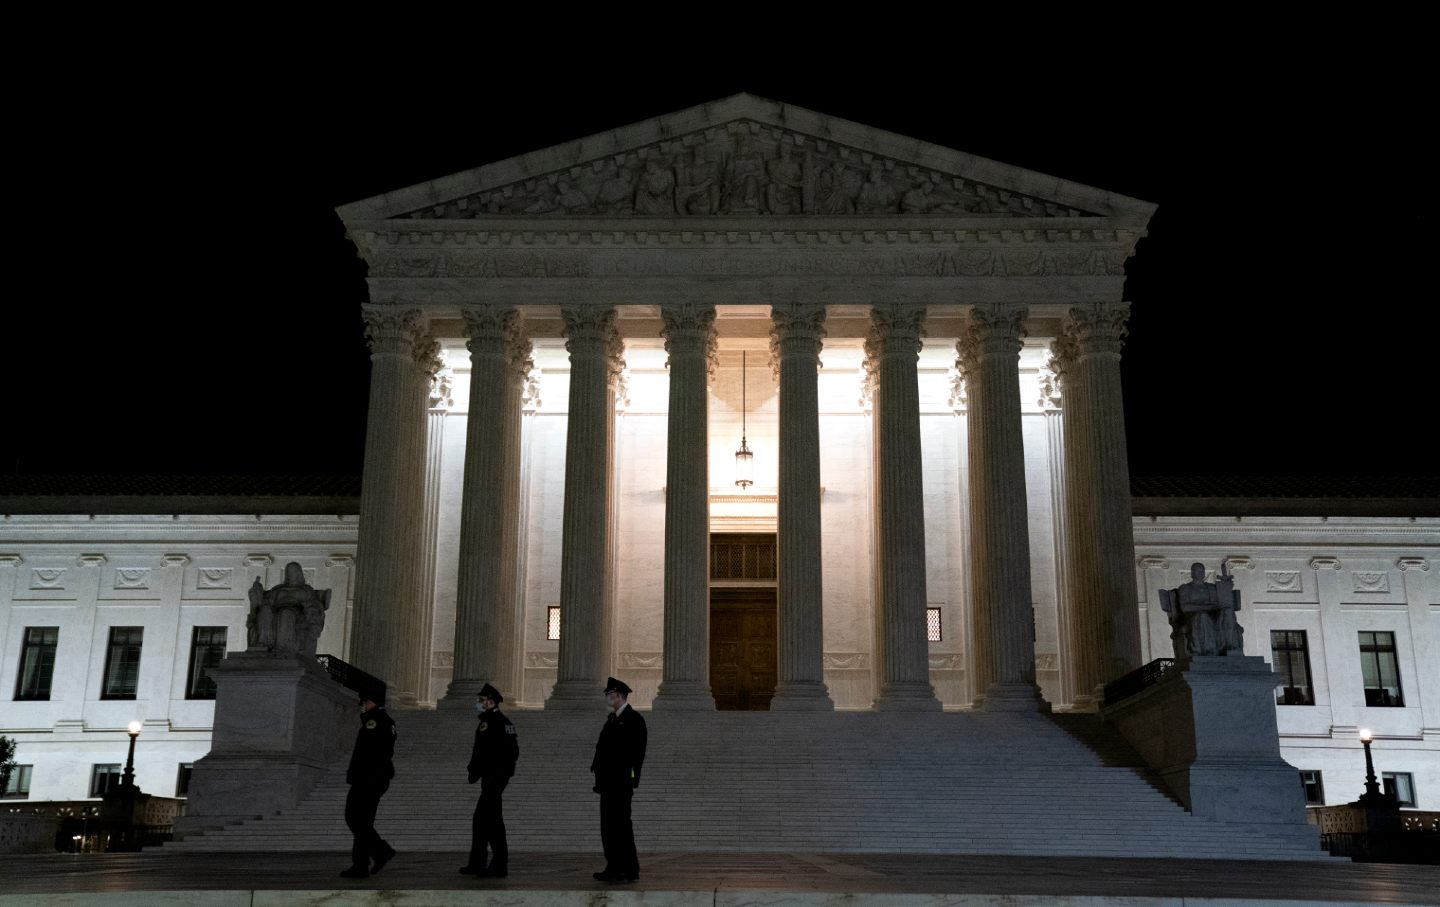 Three police officers stand outside the Supreme Court building at night